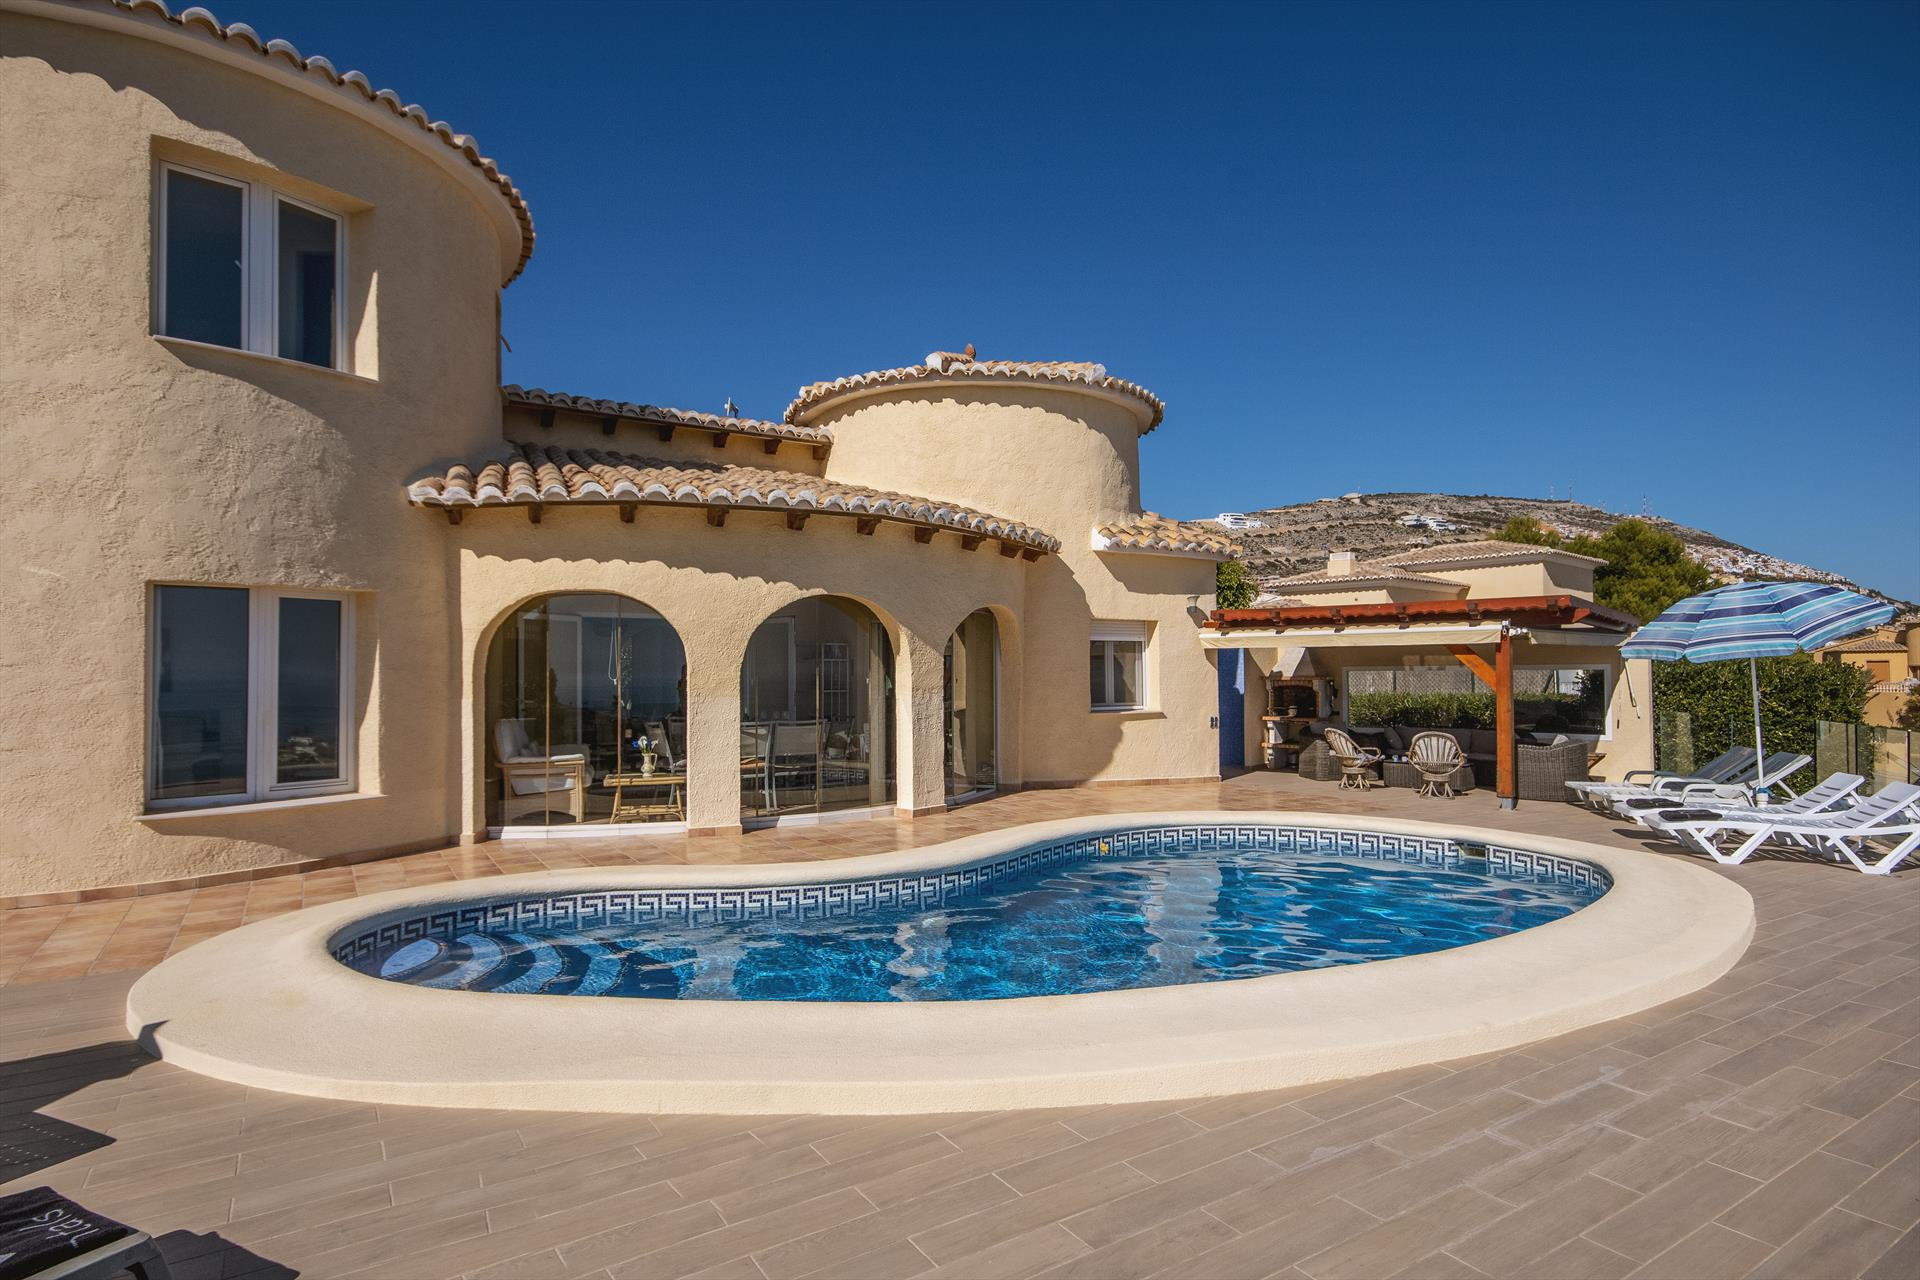 Carrevegas 4 pax, Large and nice villa in Benitachell, on the Costa Blanca, Spain  with private pool for 4 persons.....